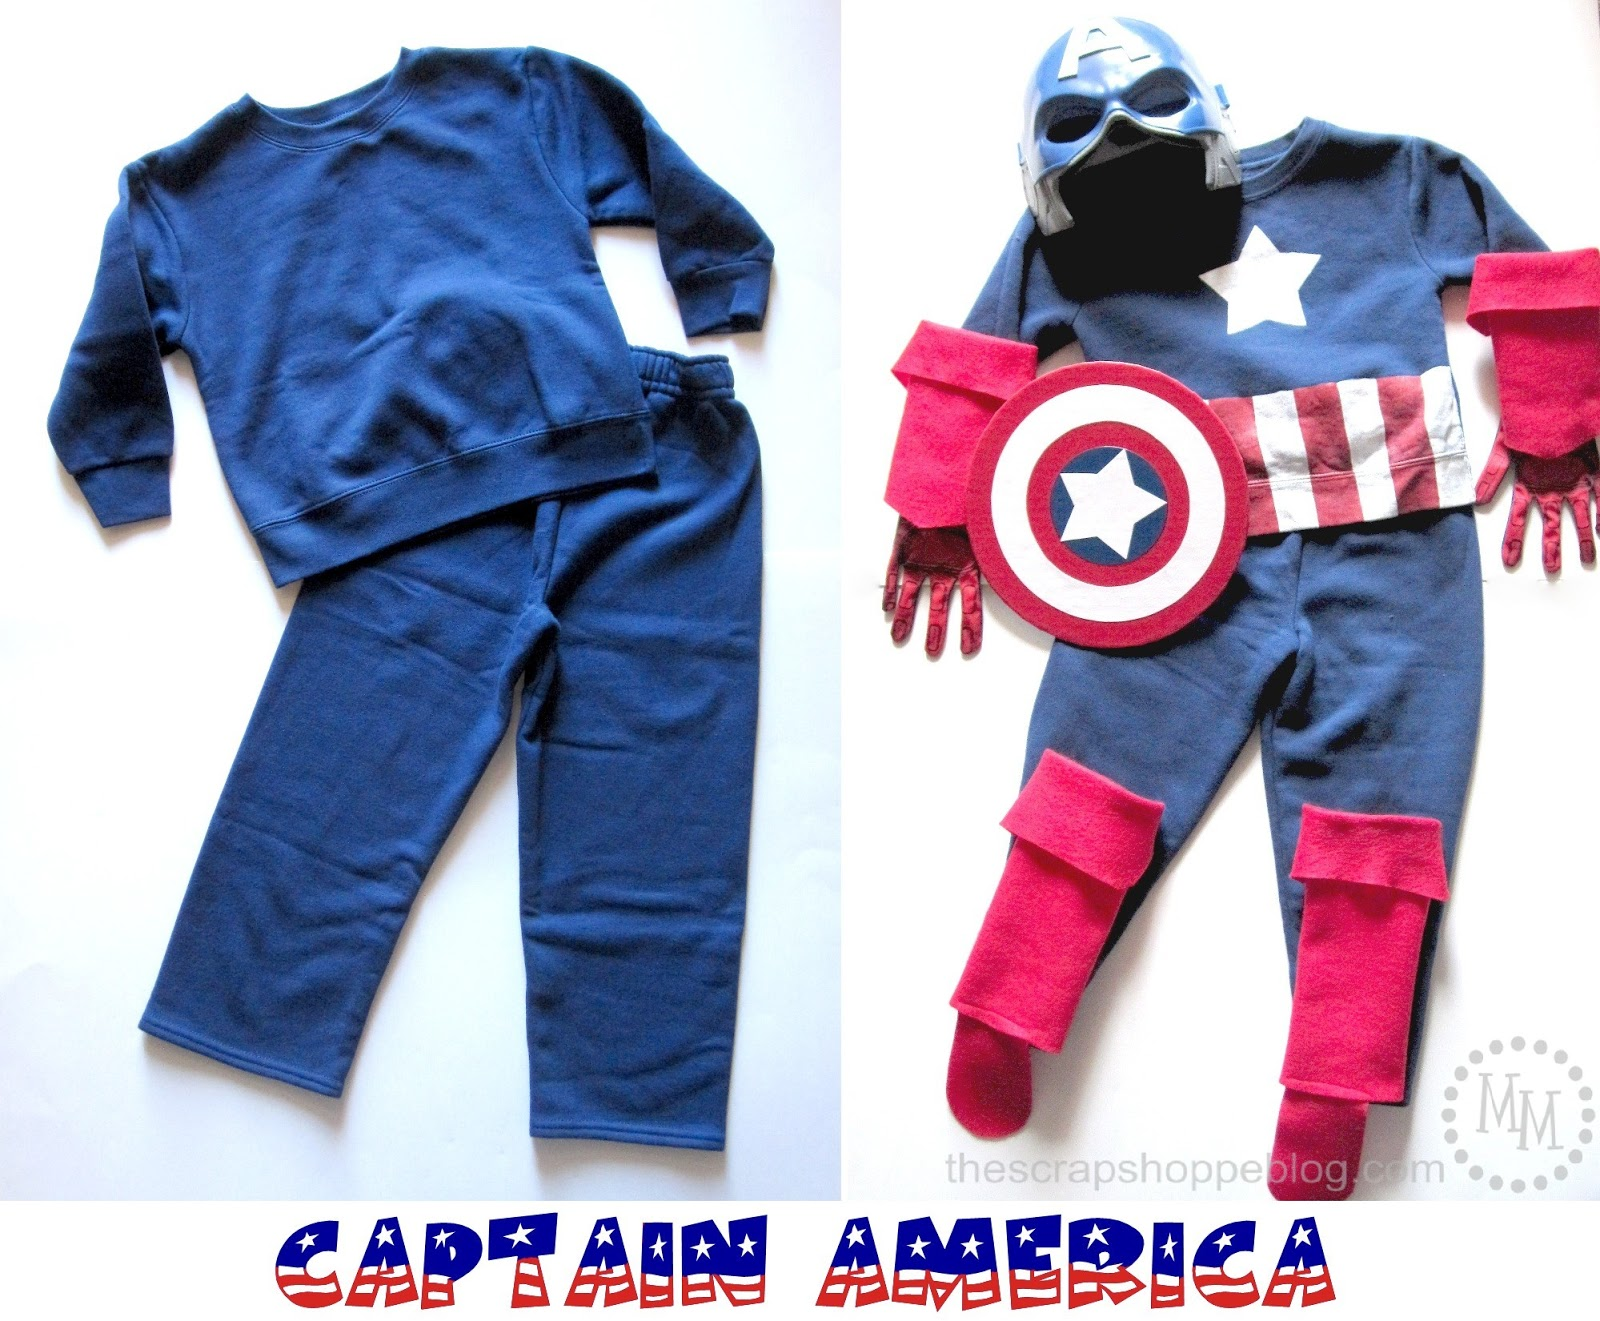 Diy captain america thor costumes the scrap shoppe diy captain america thor costumes solutioingenieria Choice Image